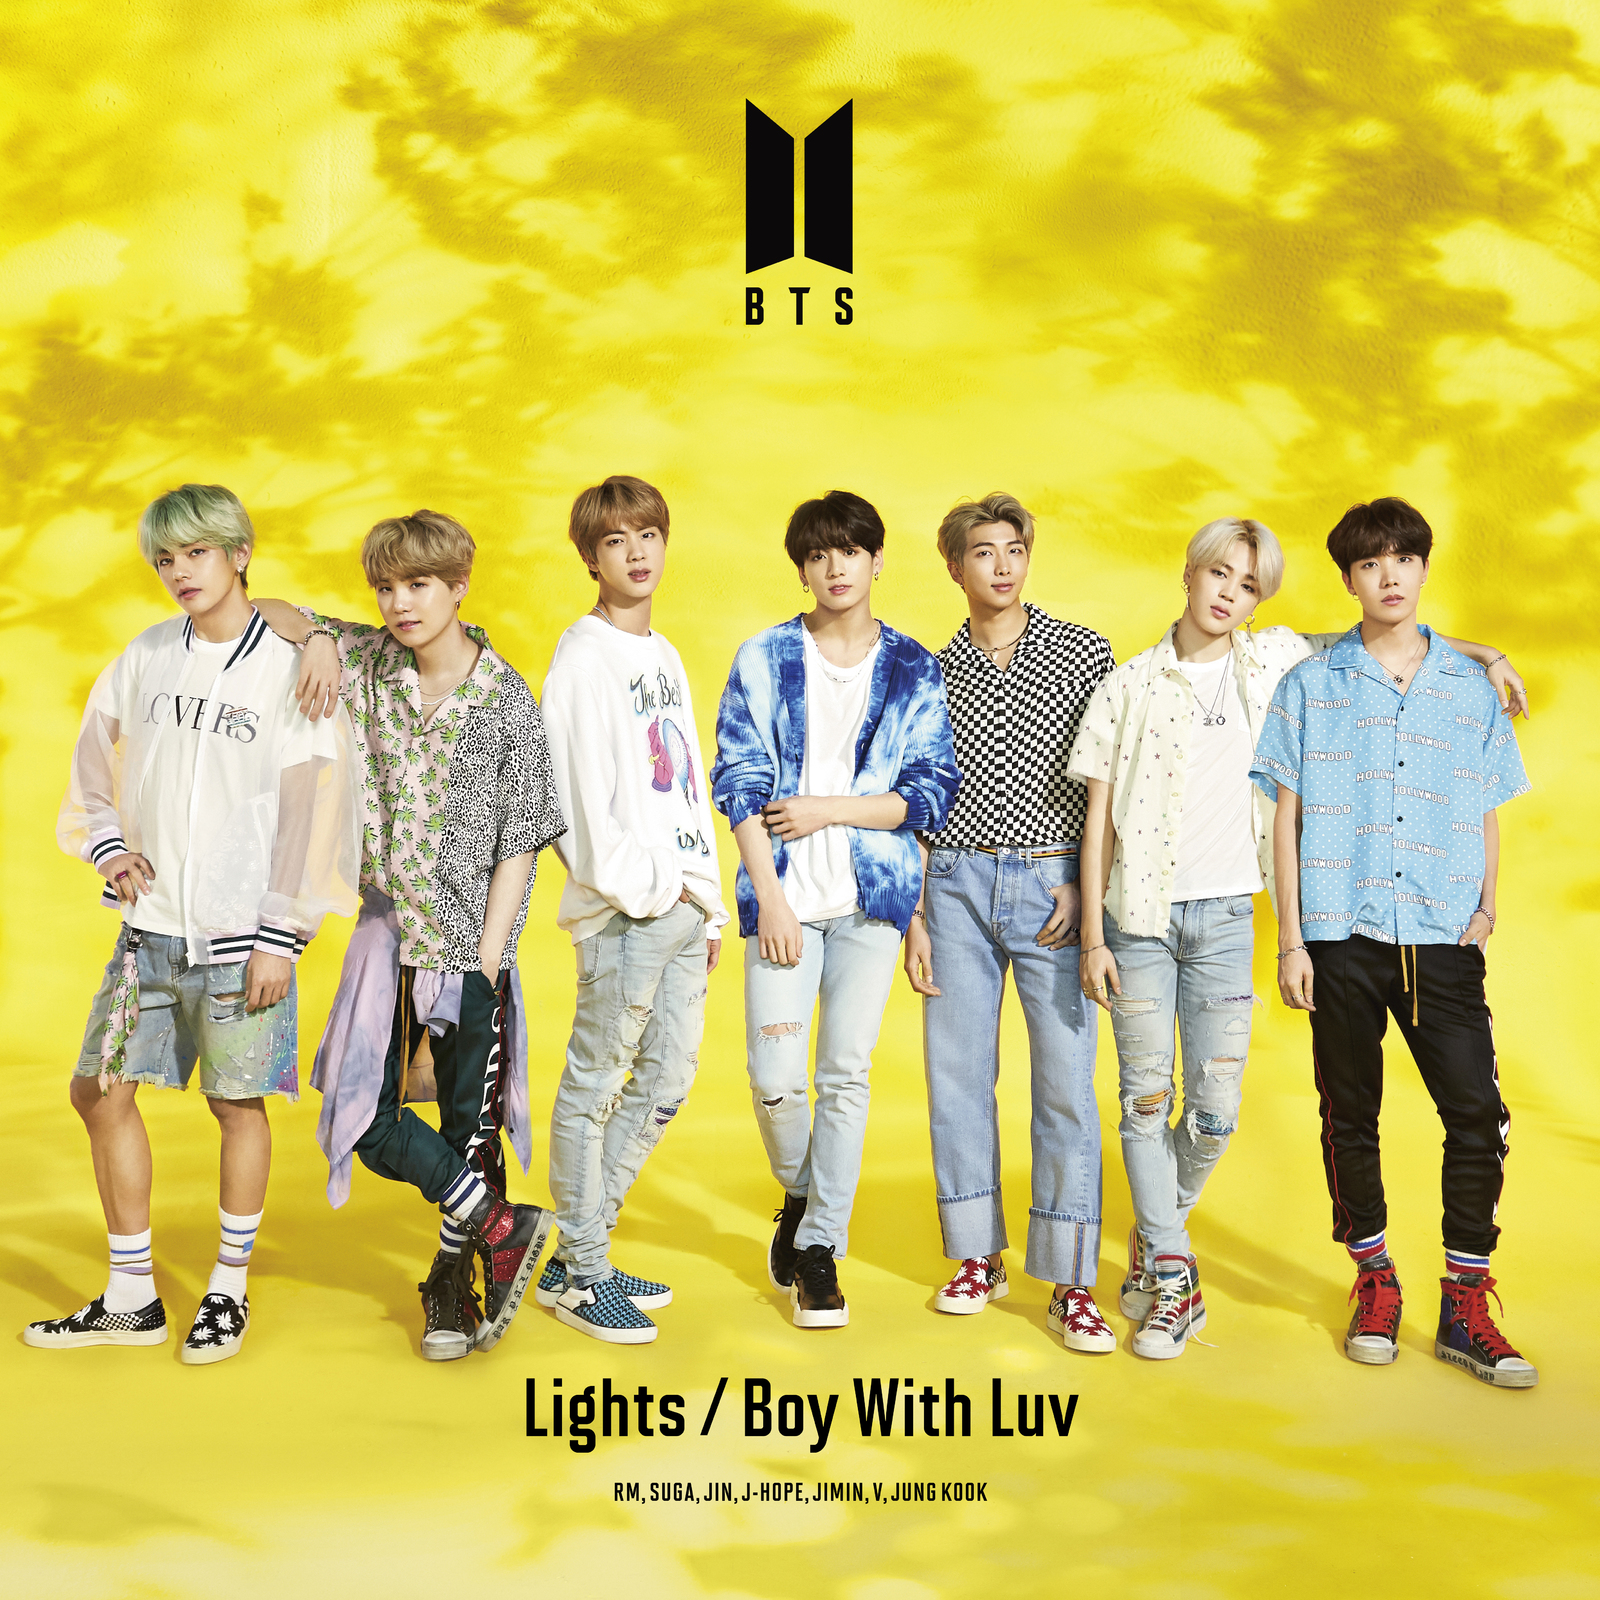 Lights / Boy With Luv - Limited Edition (A) by BTS image